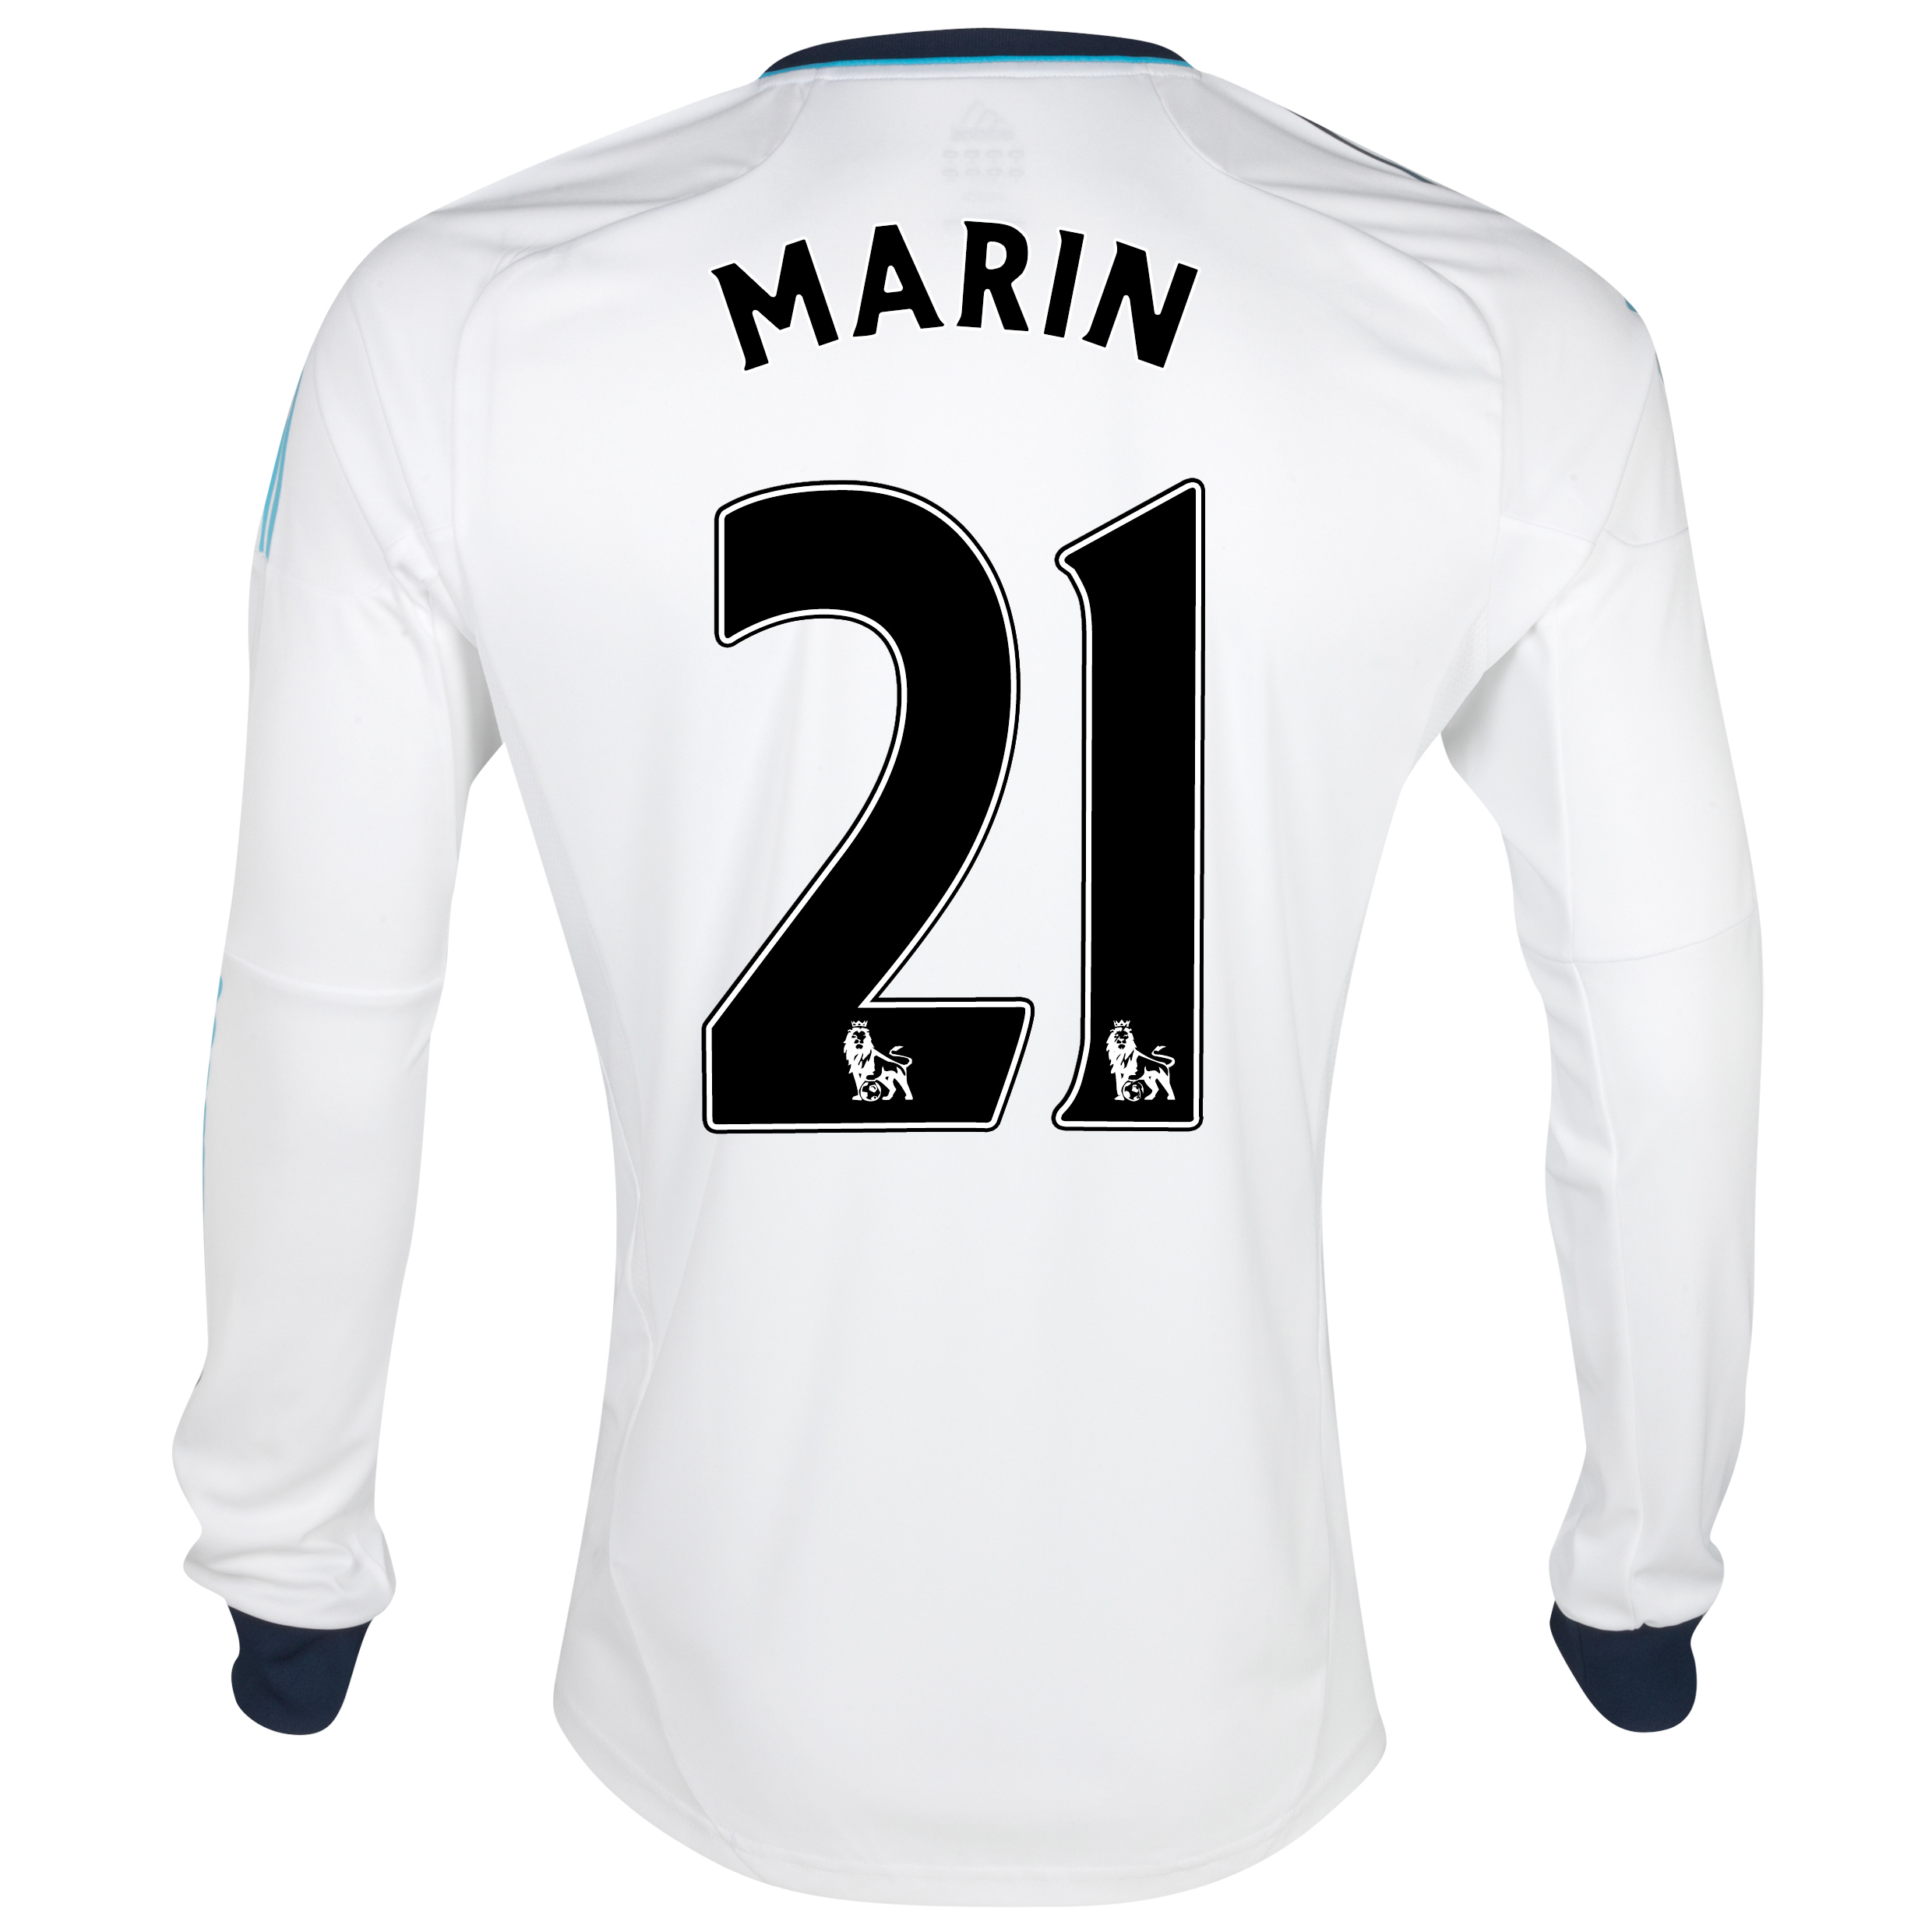 Chelsea Away Shirt 2012/13 - Long Sleeved - Kids with Marin 21 printing